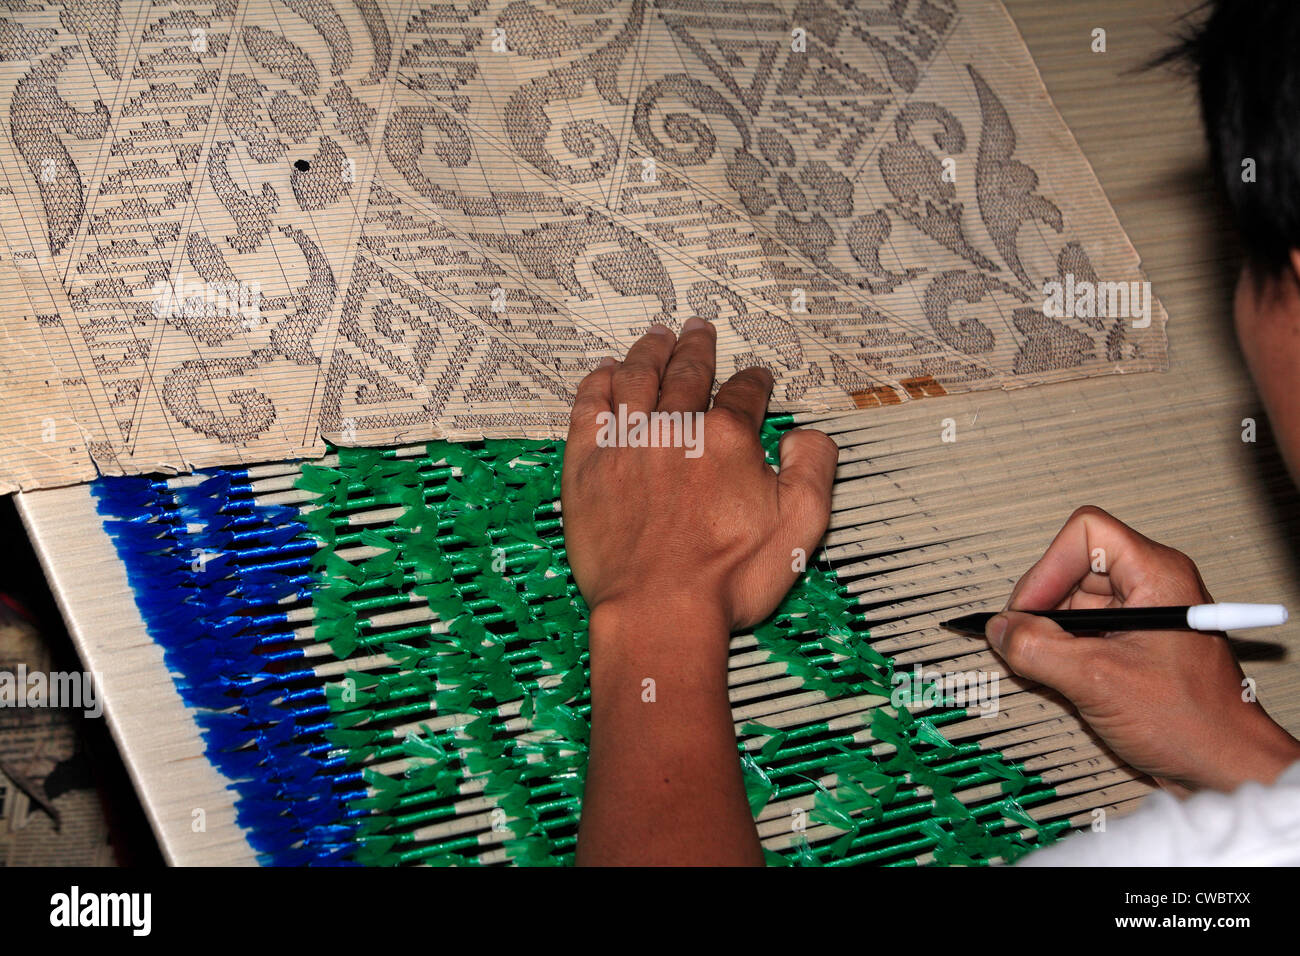 A process of Ikat fabric weaving. Preparing the thread for dyeing. - Stock Image